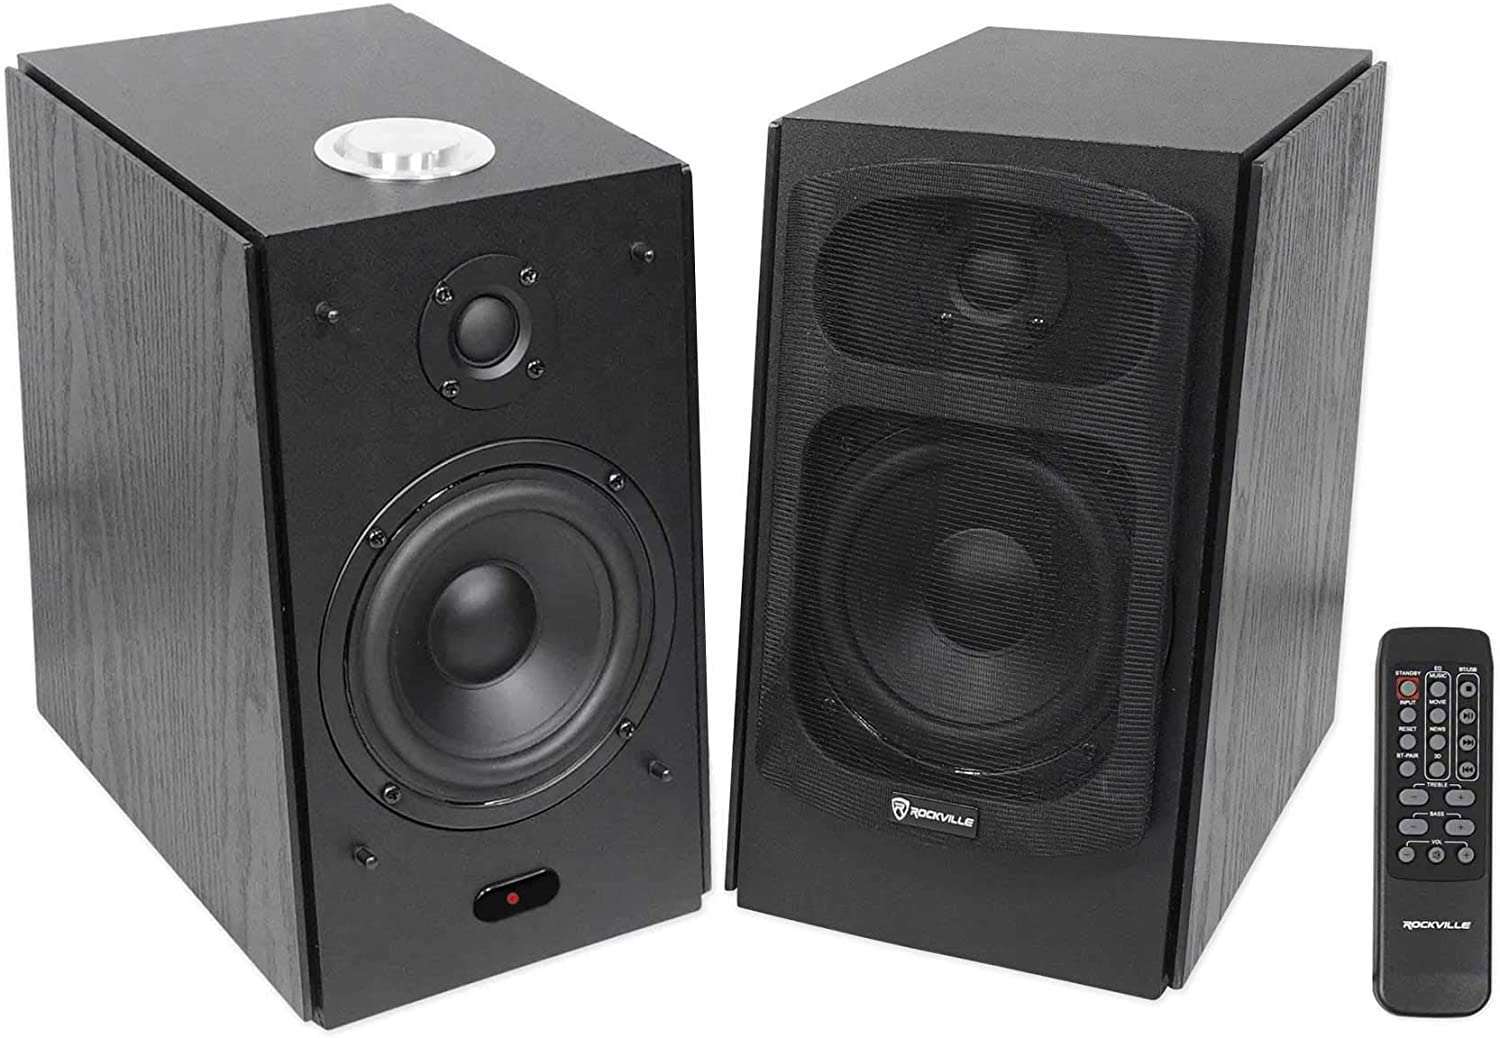 (2) Speaker Home Theater System for Sony A9F Television TV - in Black 71KxyeKwx1LSL1500_